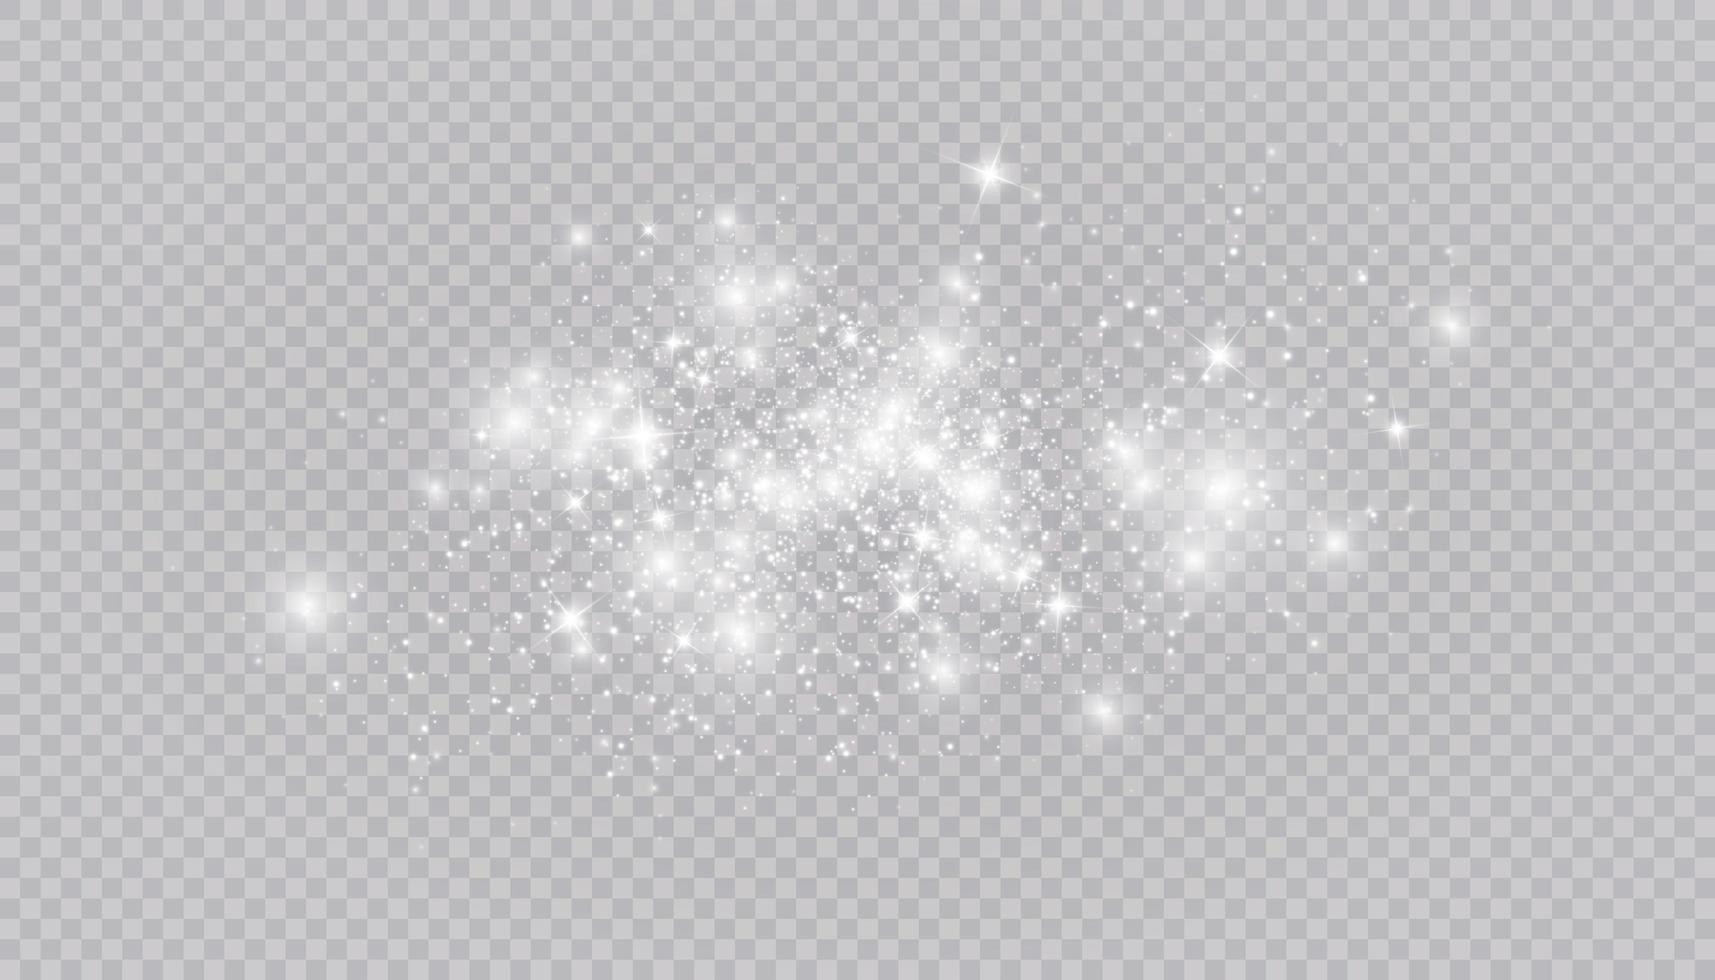 Glowing light effect with many glitter particles isolated vector